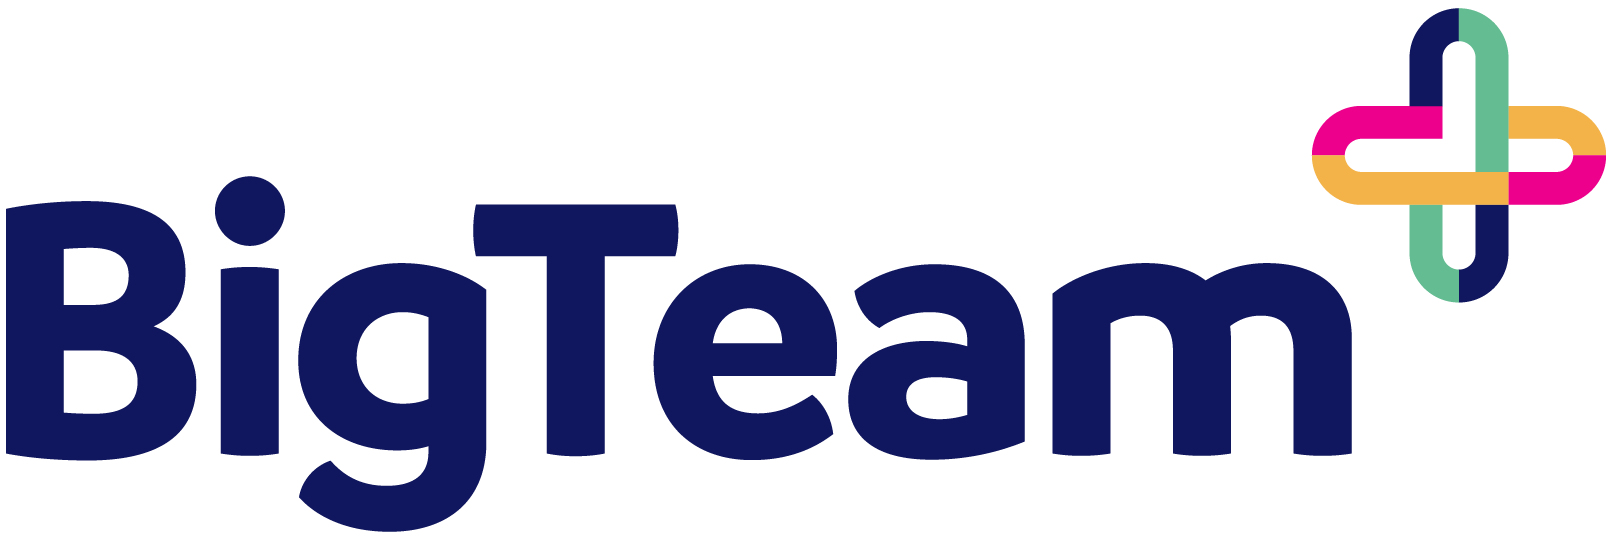 BT_Final Logo_Blue.png